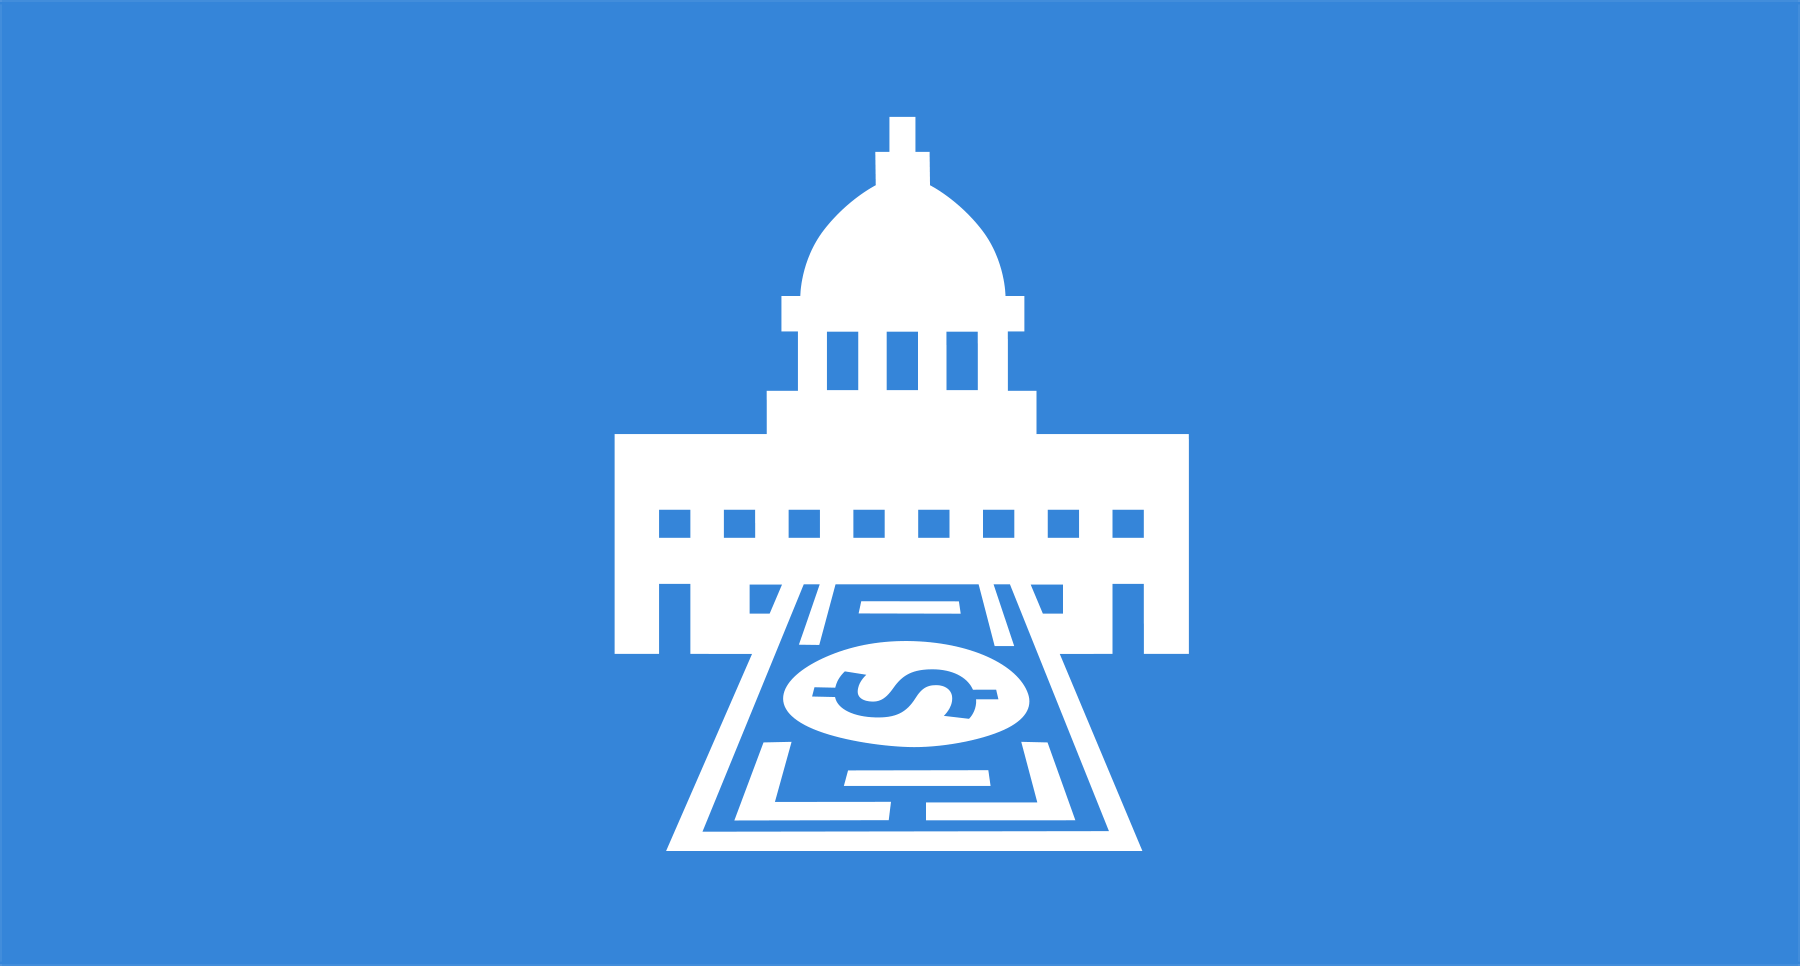 America's Transportation Infrastructure Act of 2019